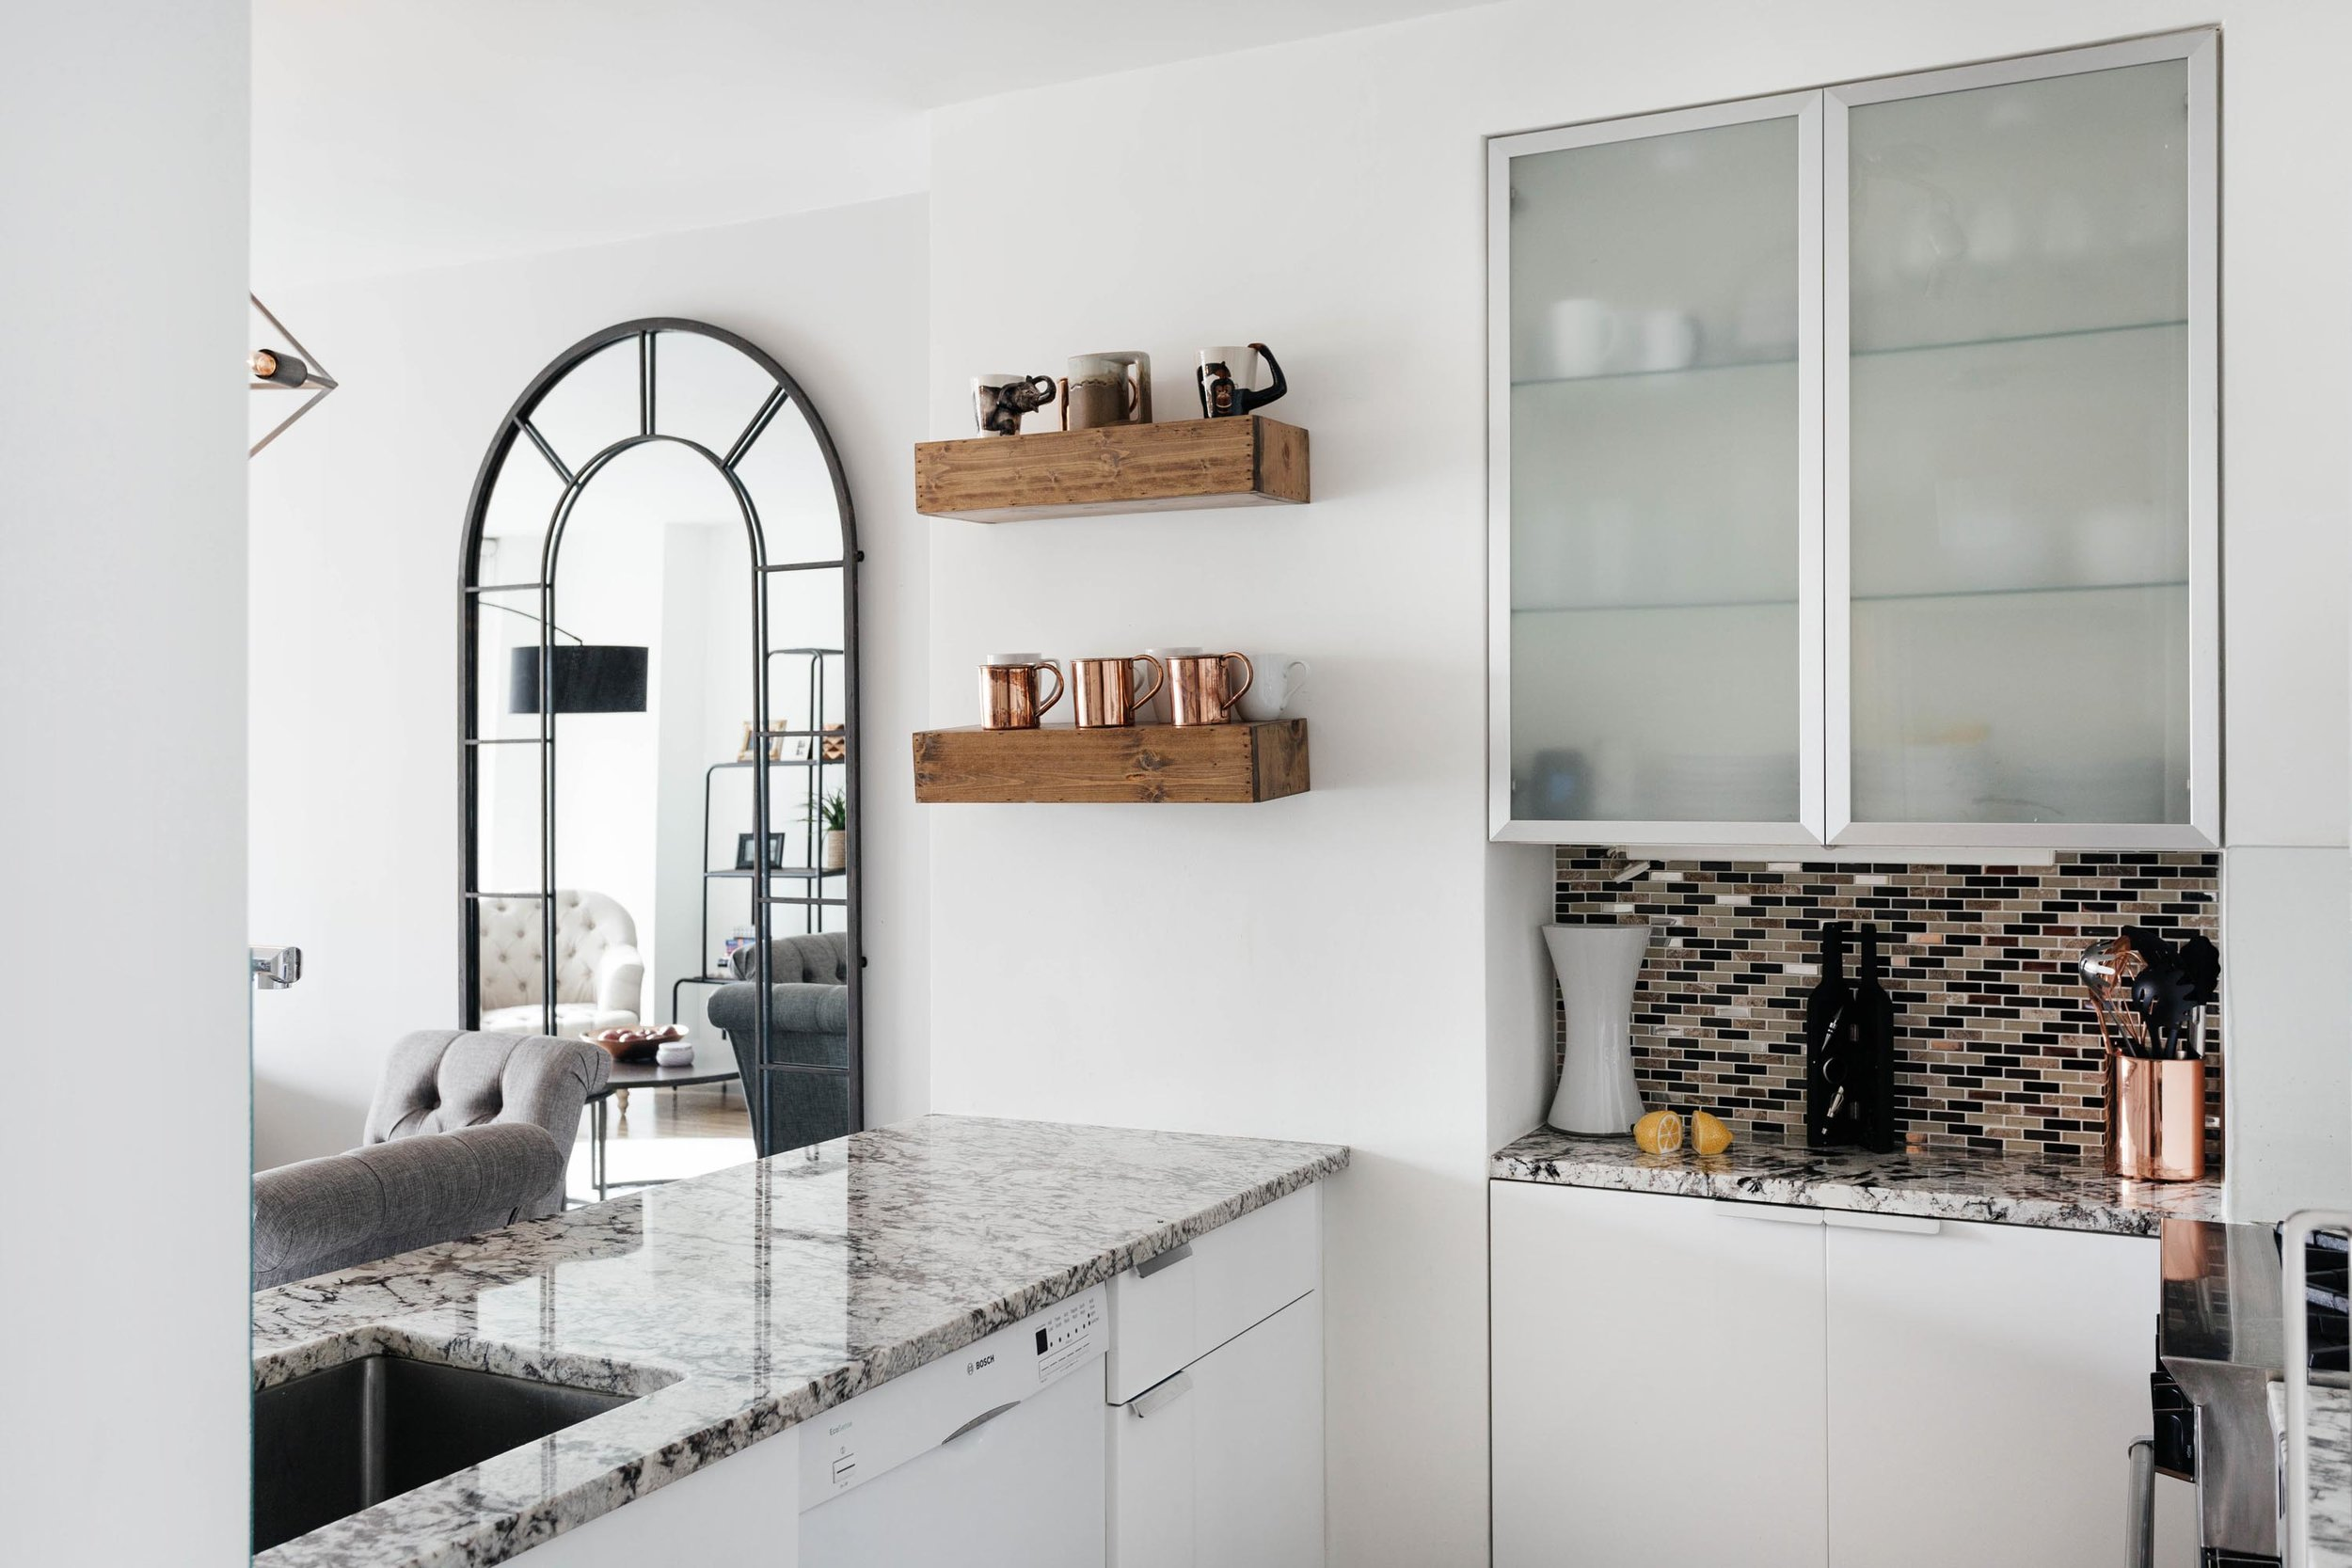 Kitchen area with grey marble counter top